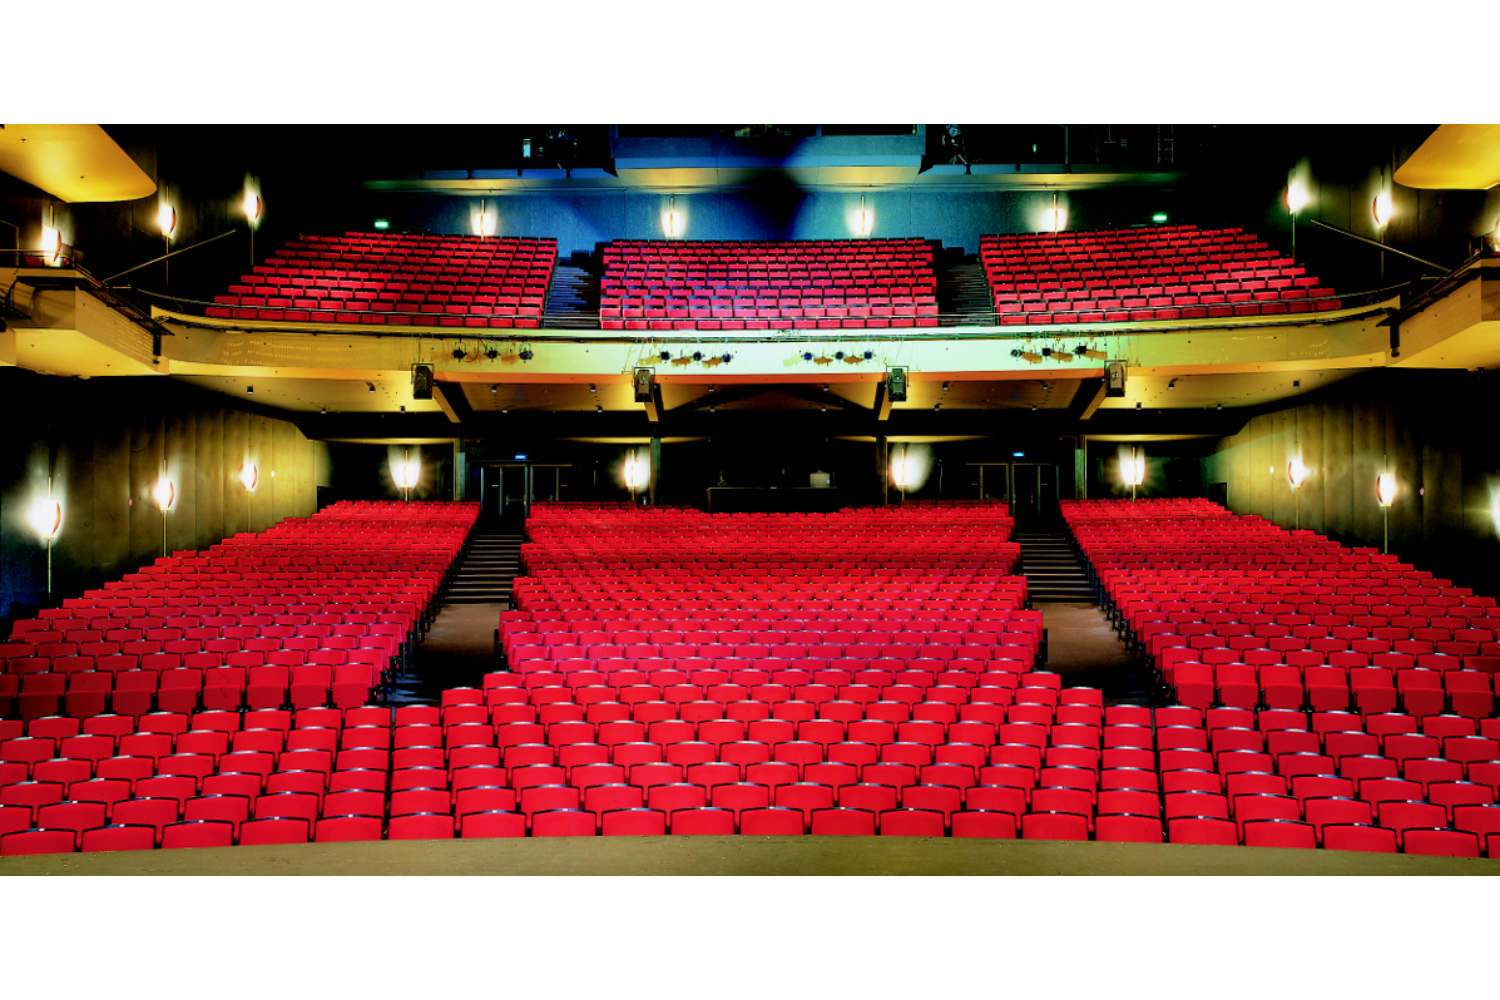 Musical Theater Basel in Basel, Switzerland. Acousting consulting and treatment by WSDG in Europe. Rear view